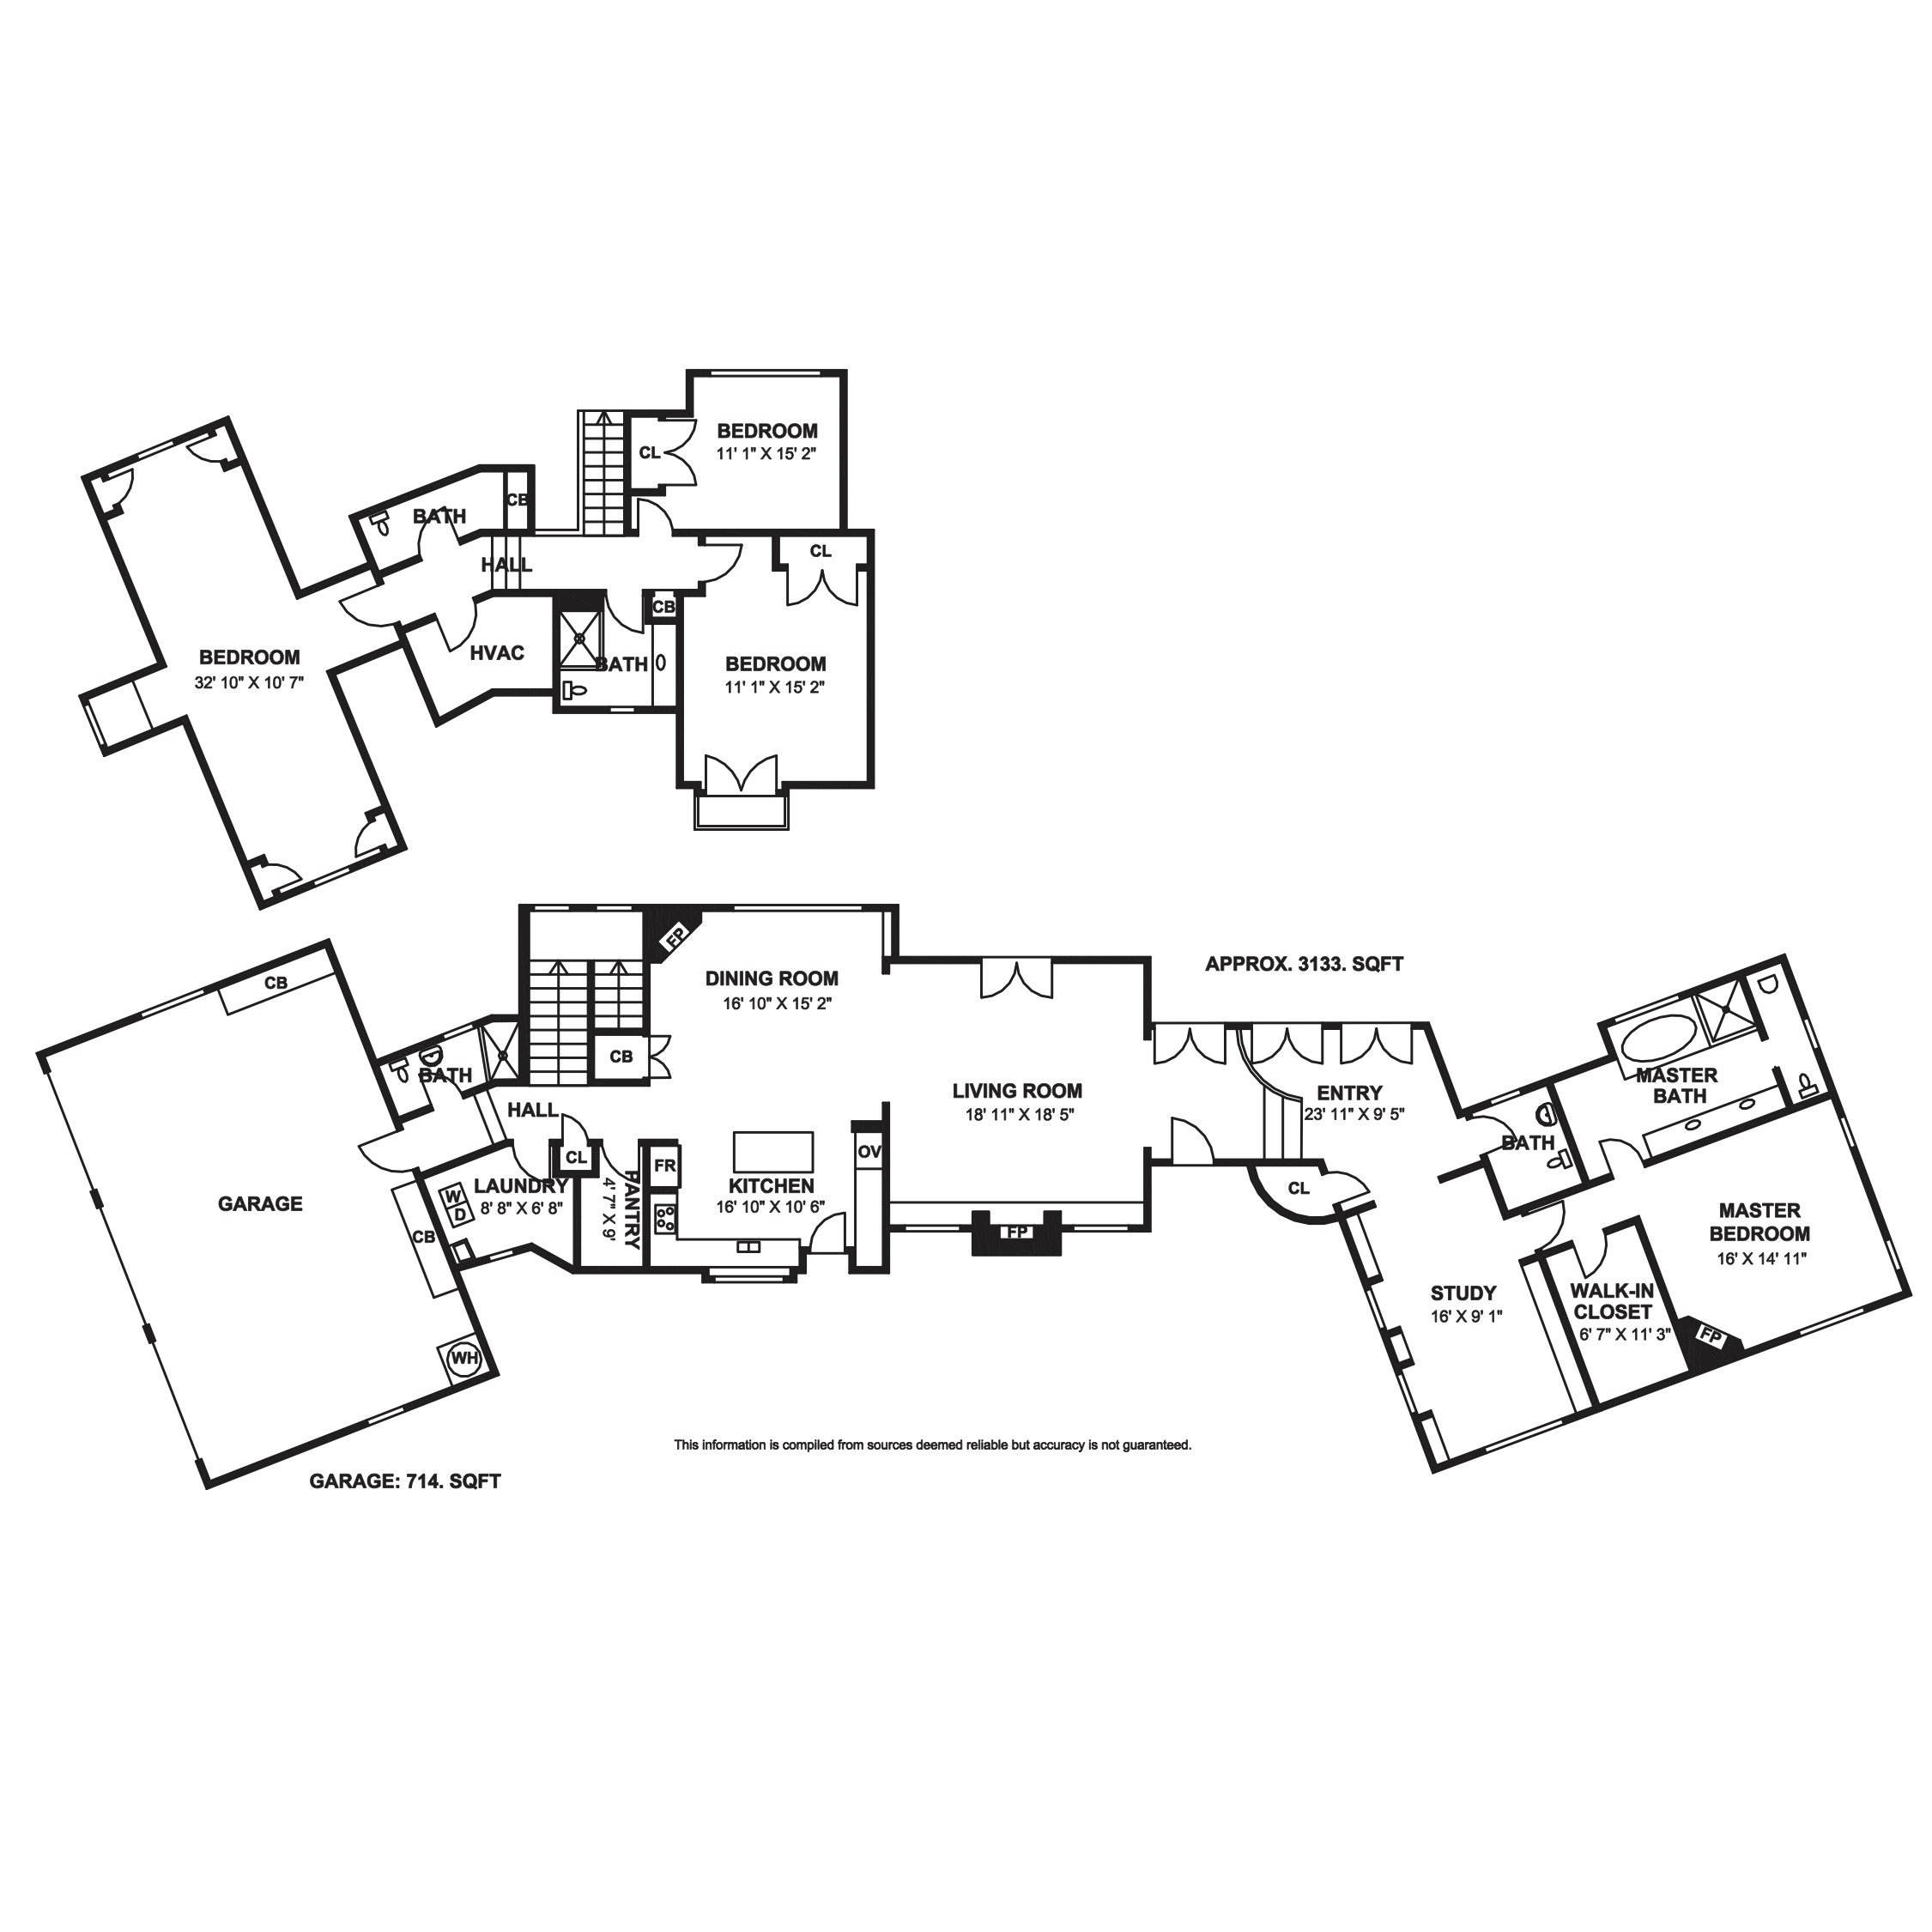 floor plan for santa ynez real estate listing